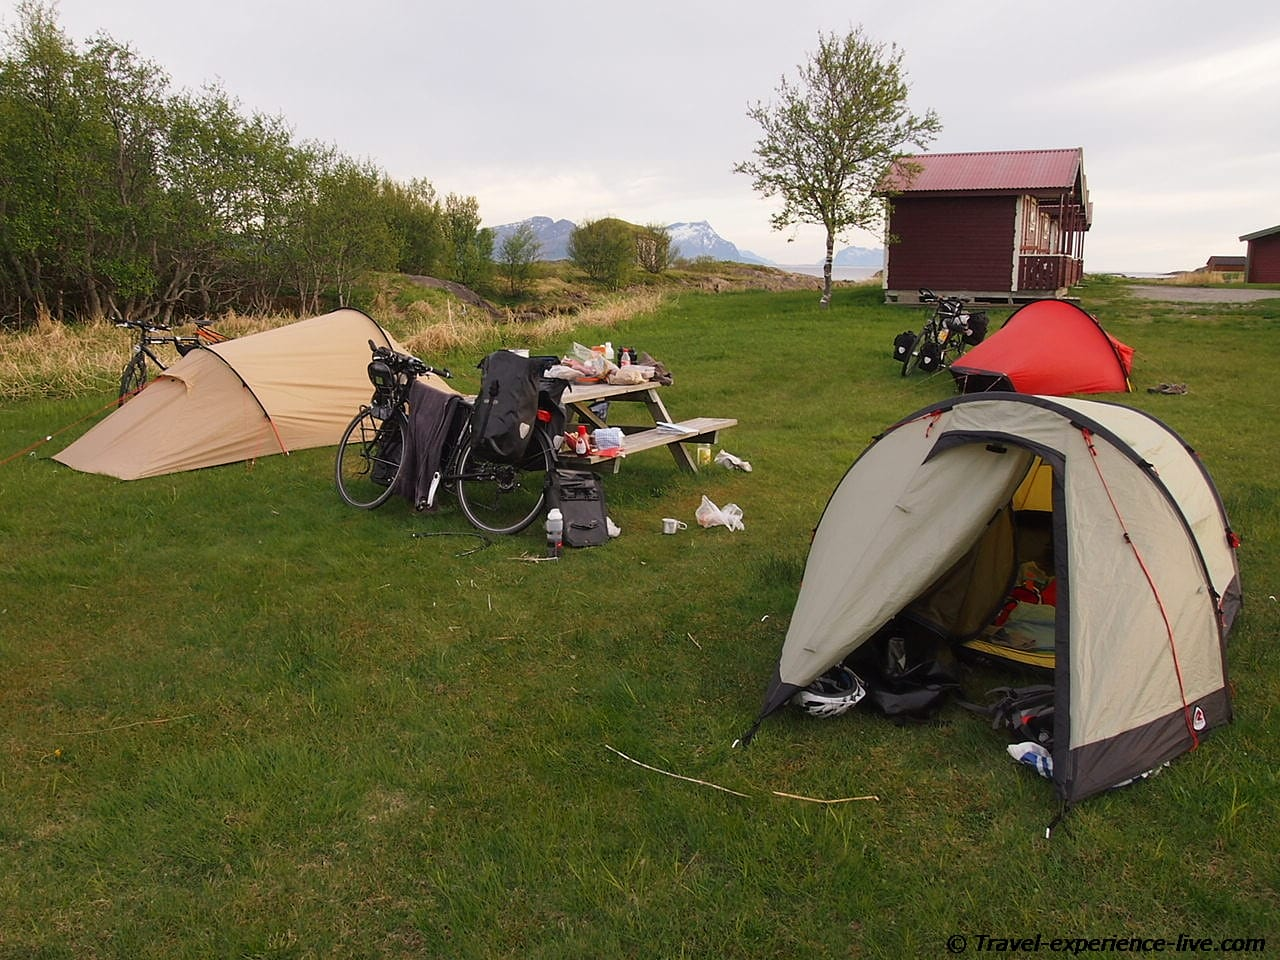 North Cape Cycling Adventure – Day 48 to 57